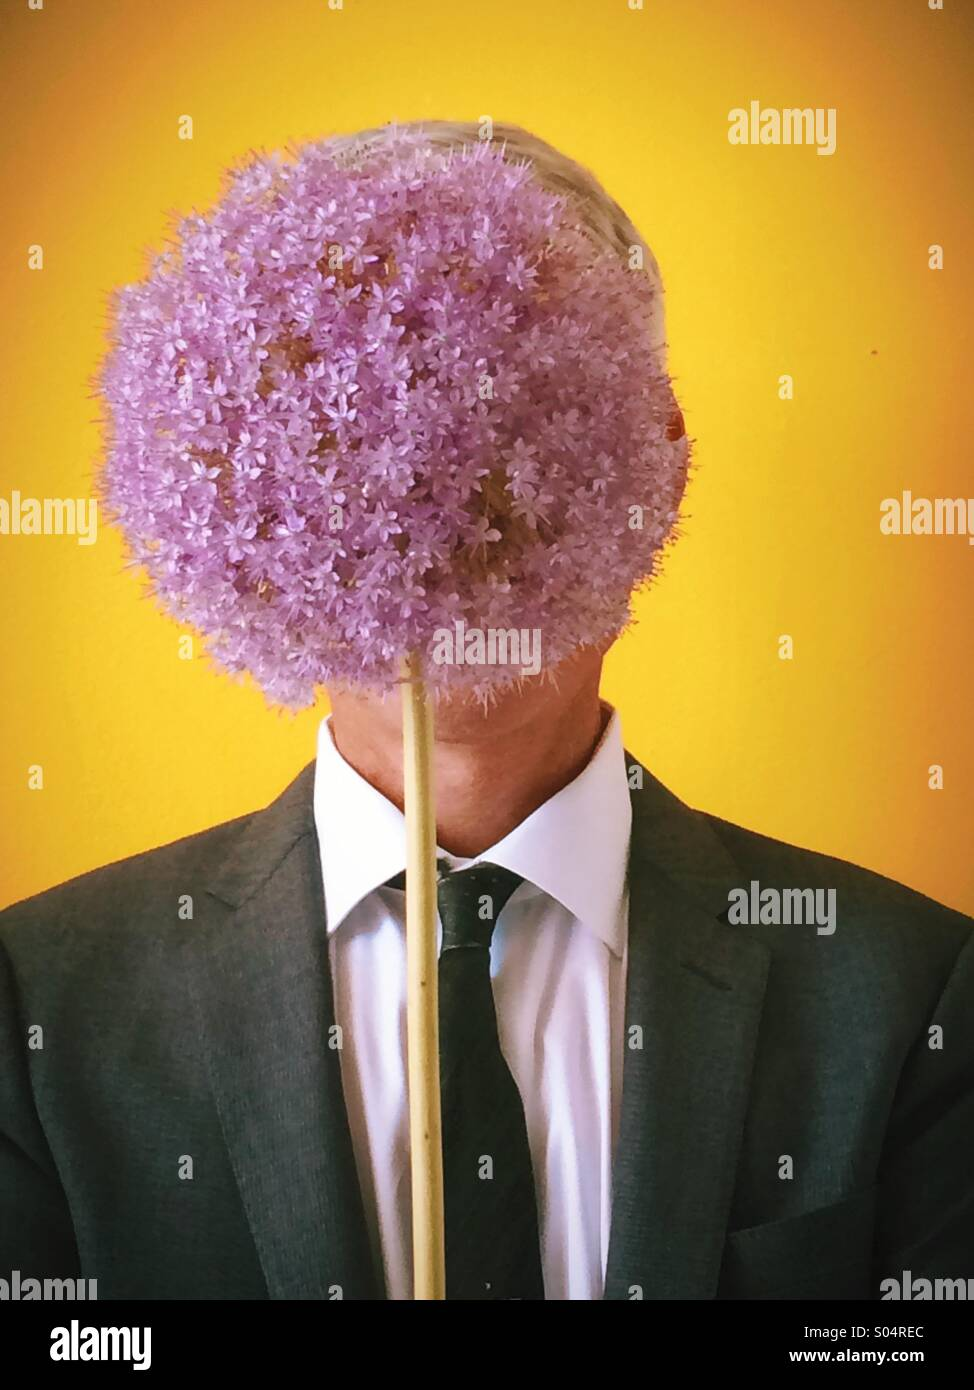 Alium flower Masque visage mans Photo Stock